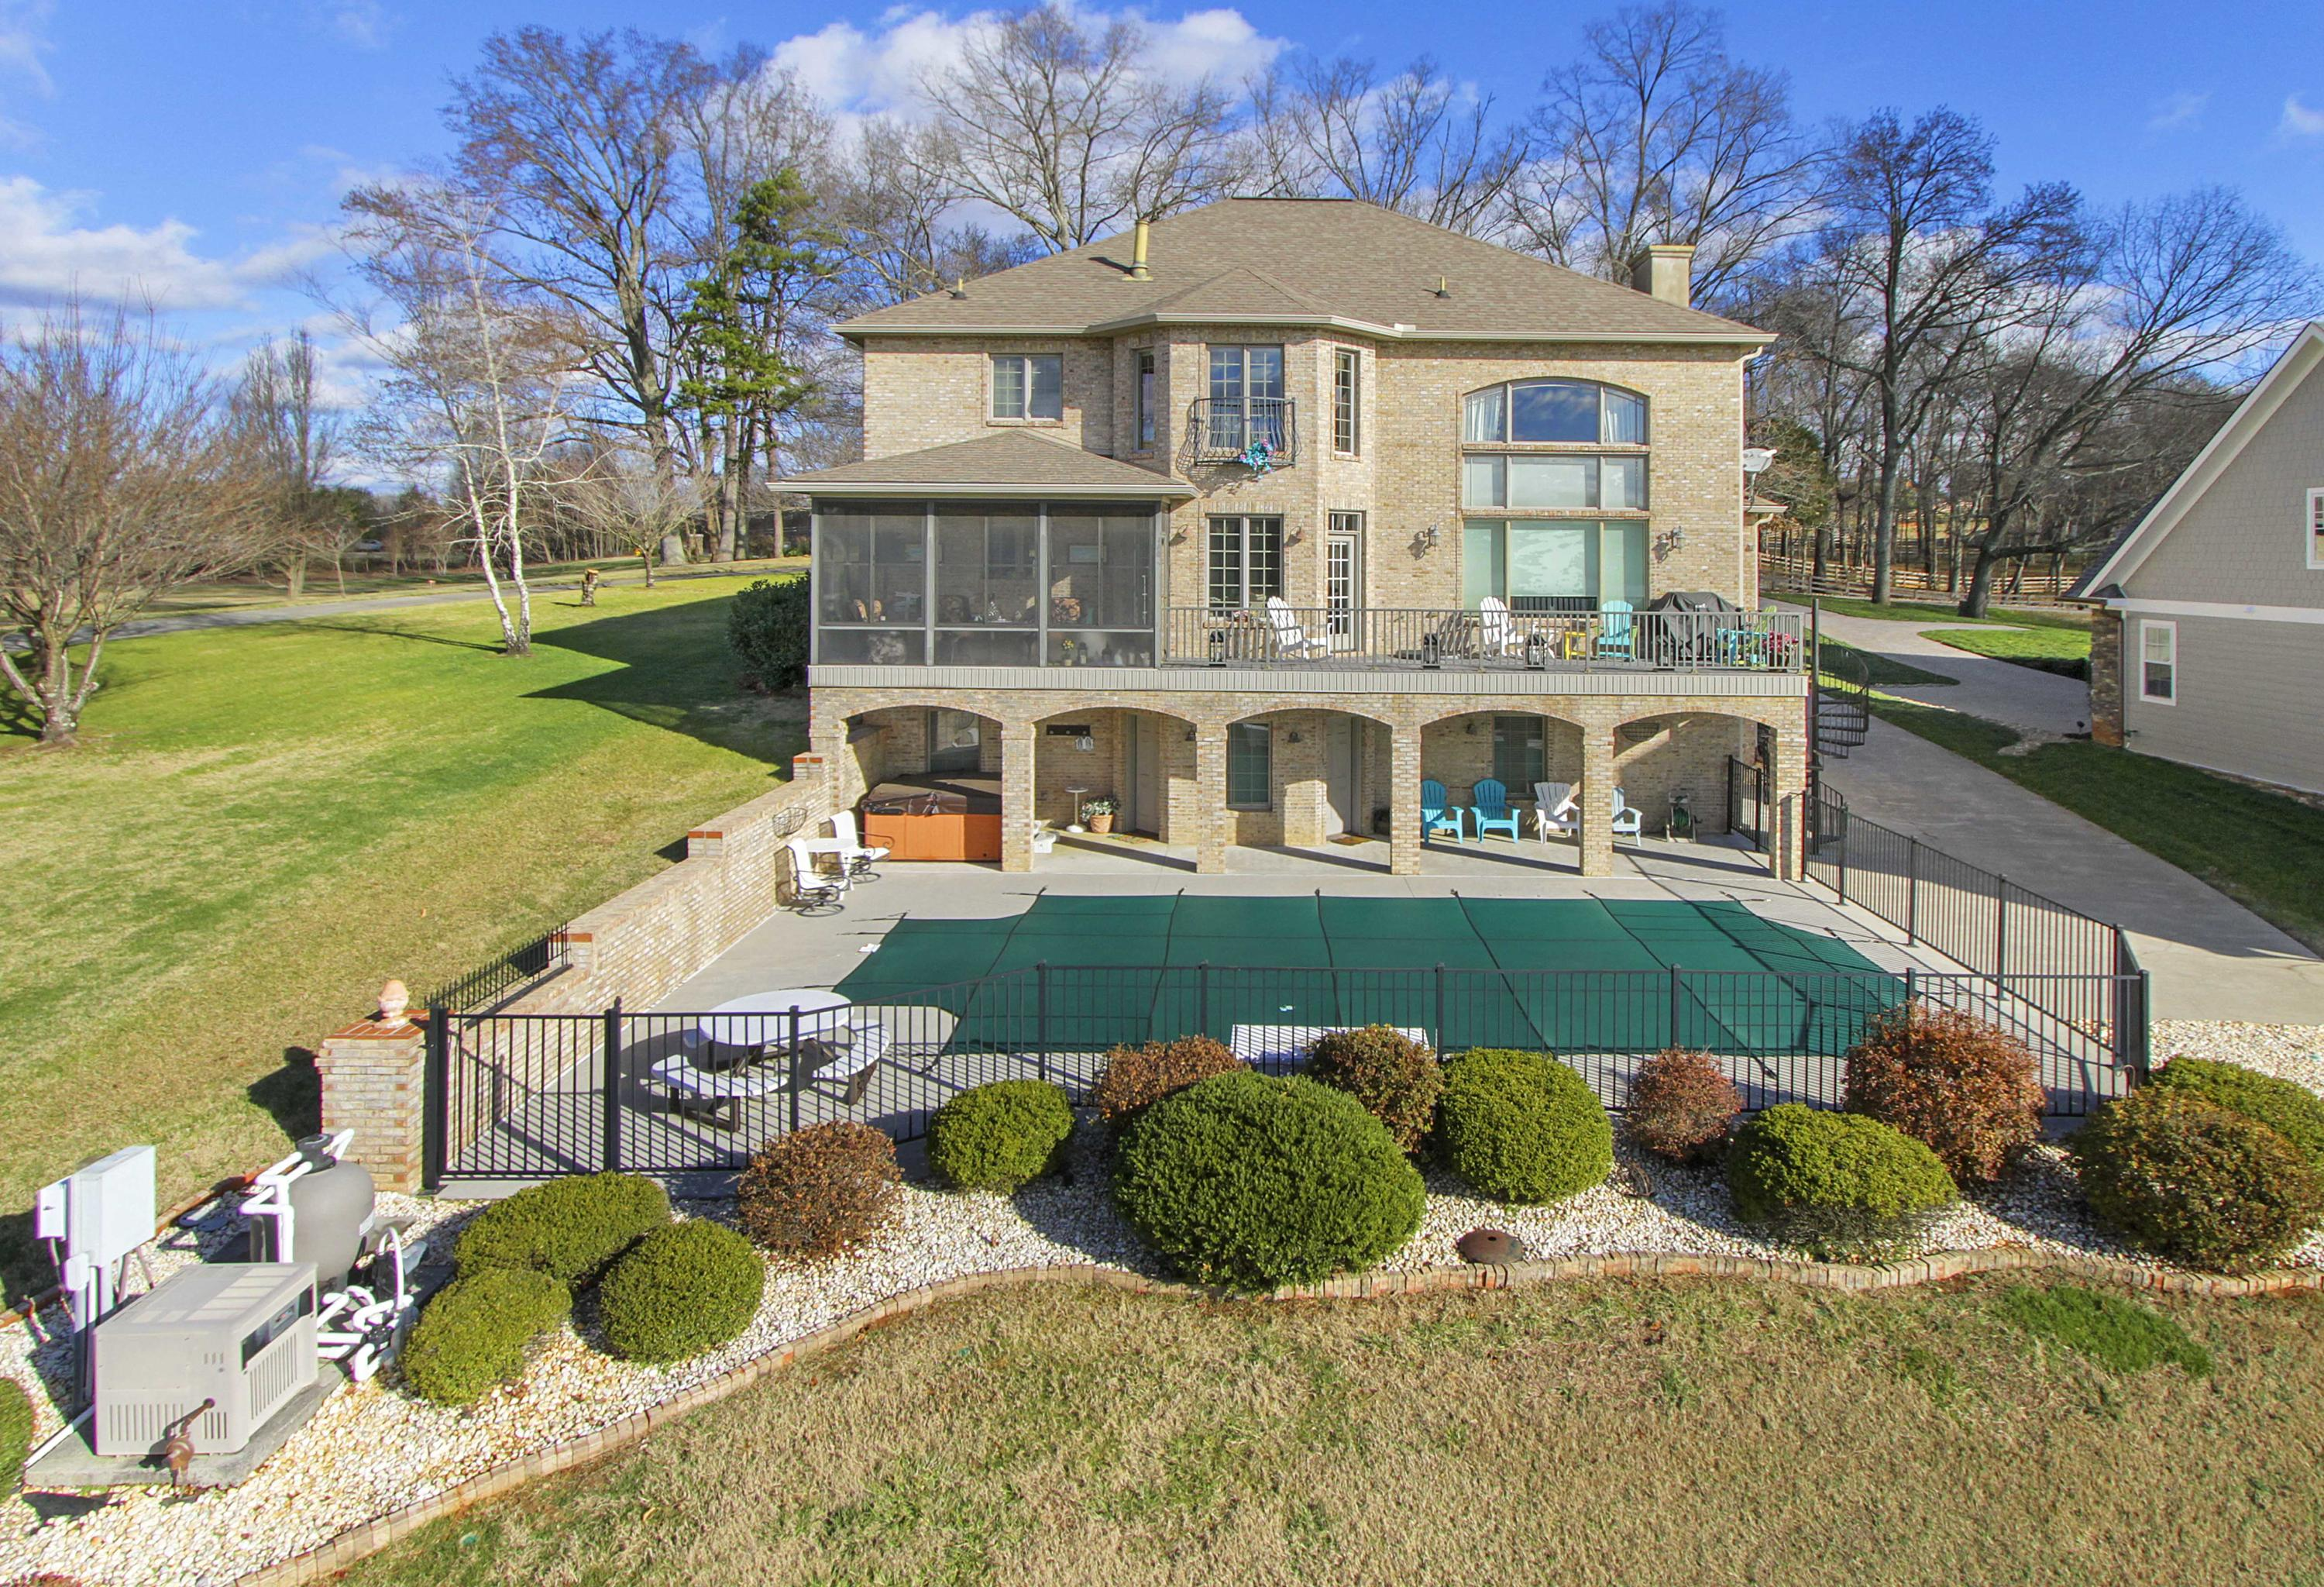 4734 Colonial Harbor Drive: